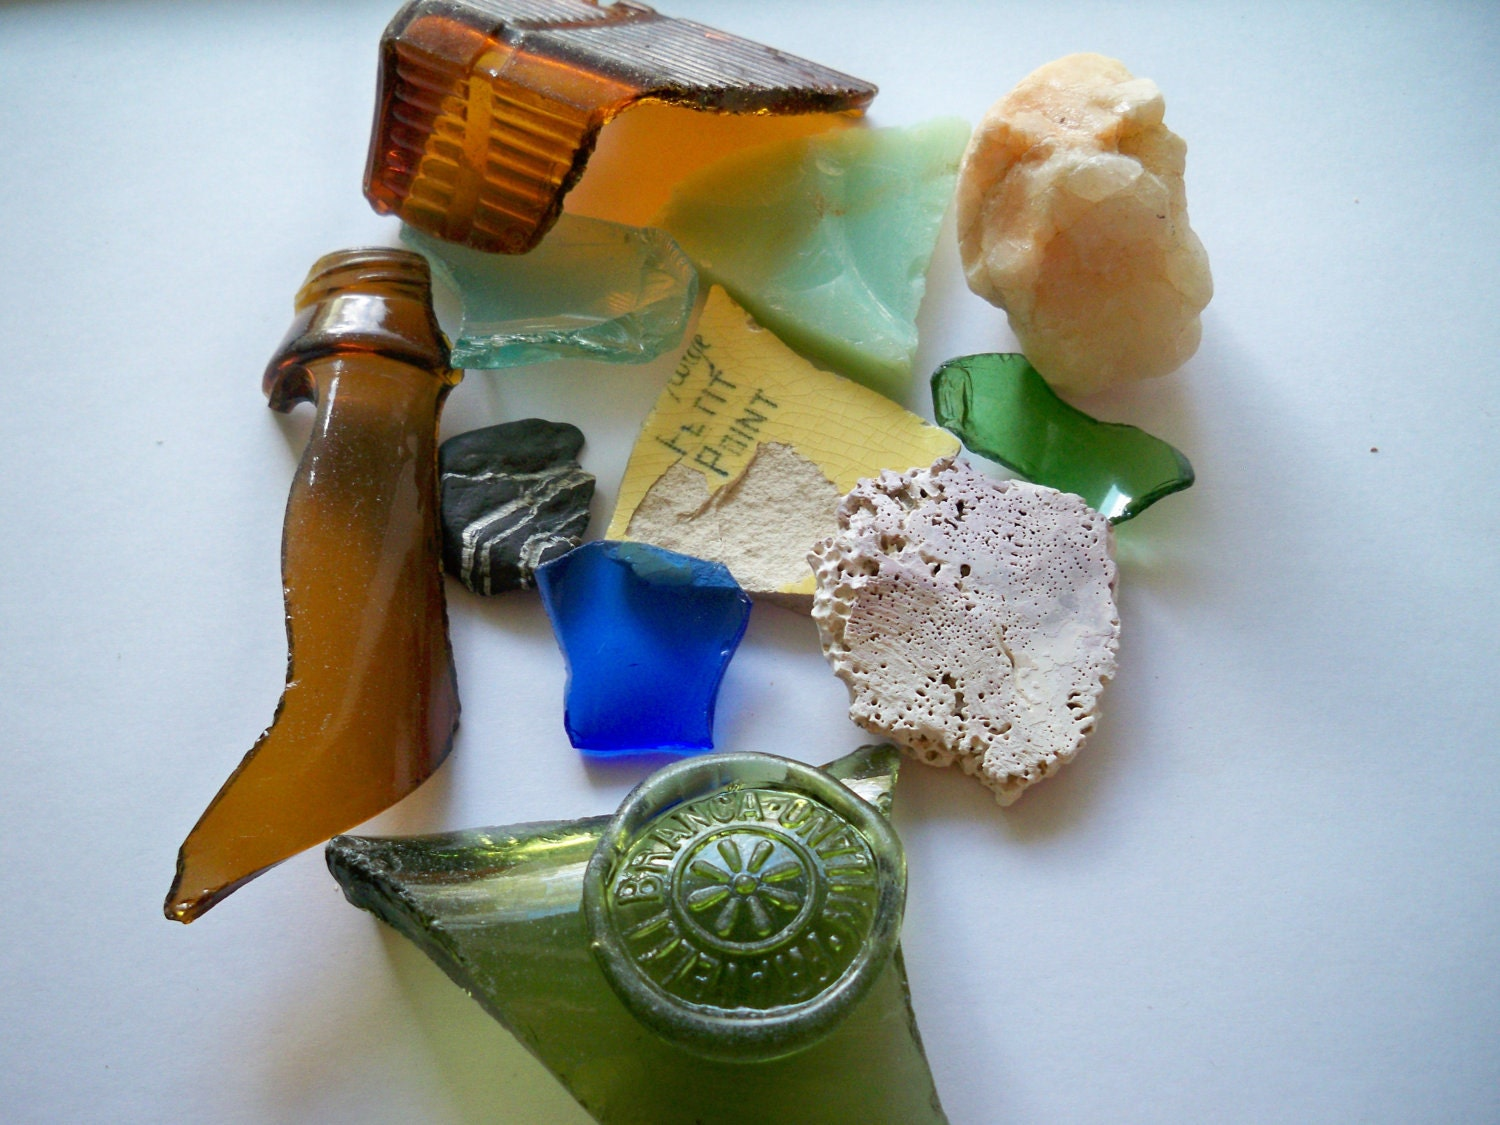 Sea glass, shells, pottery, stones - ocean and beach treasures